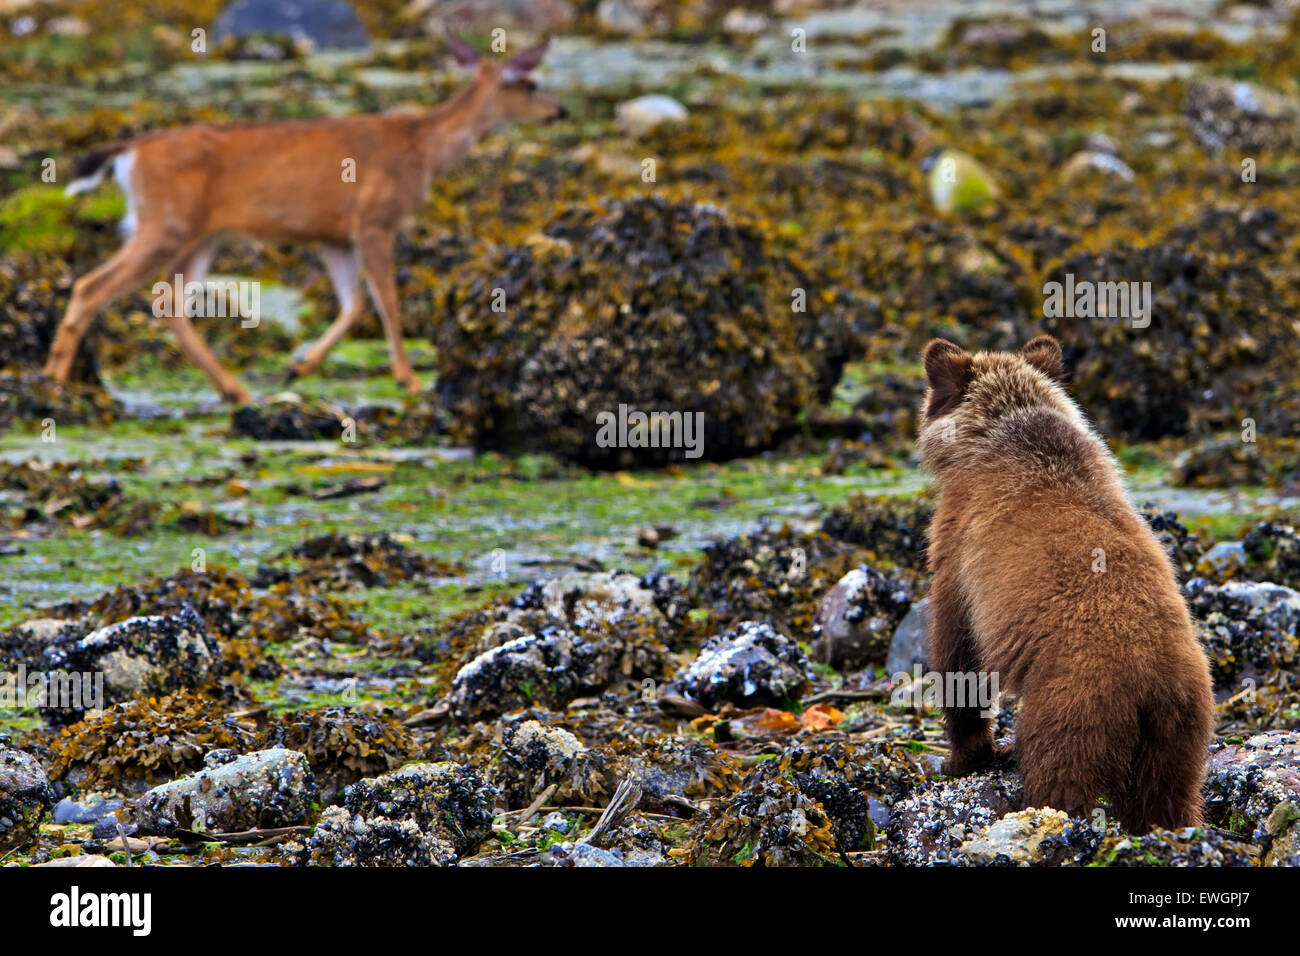 Coastal Grizzly bear cub looking at passing deer, at low tide on the British Columbia Mainland, Canada - Stock Image